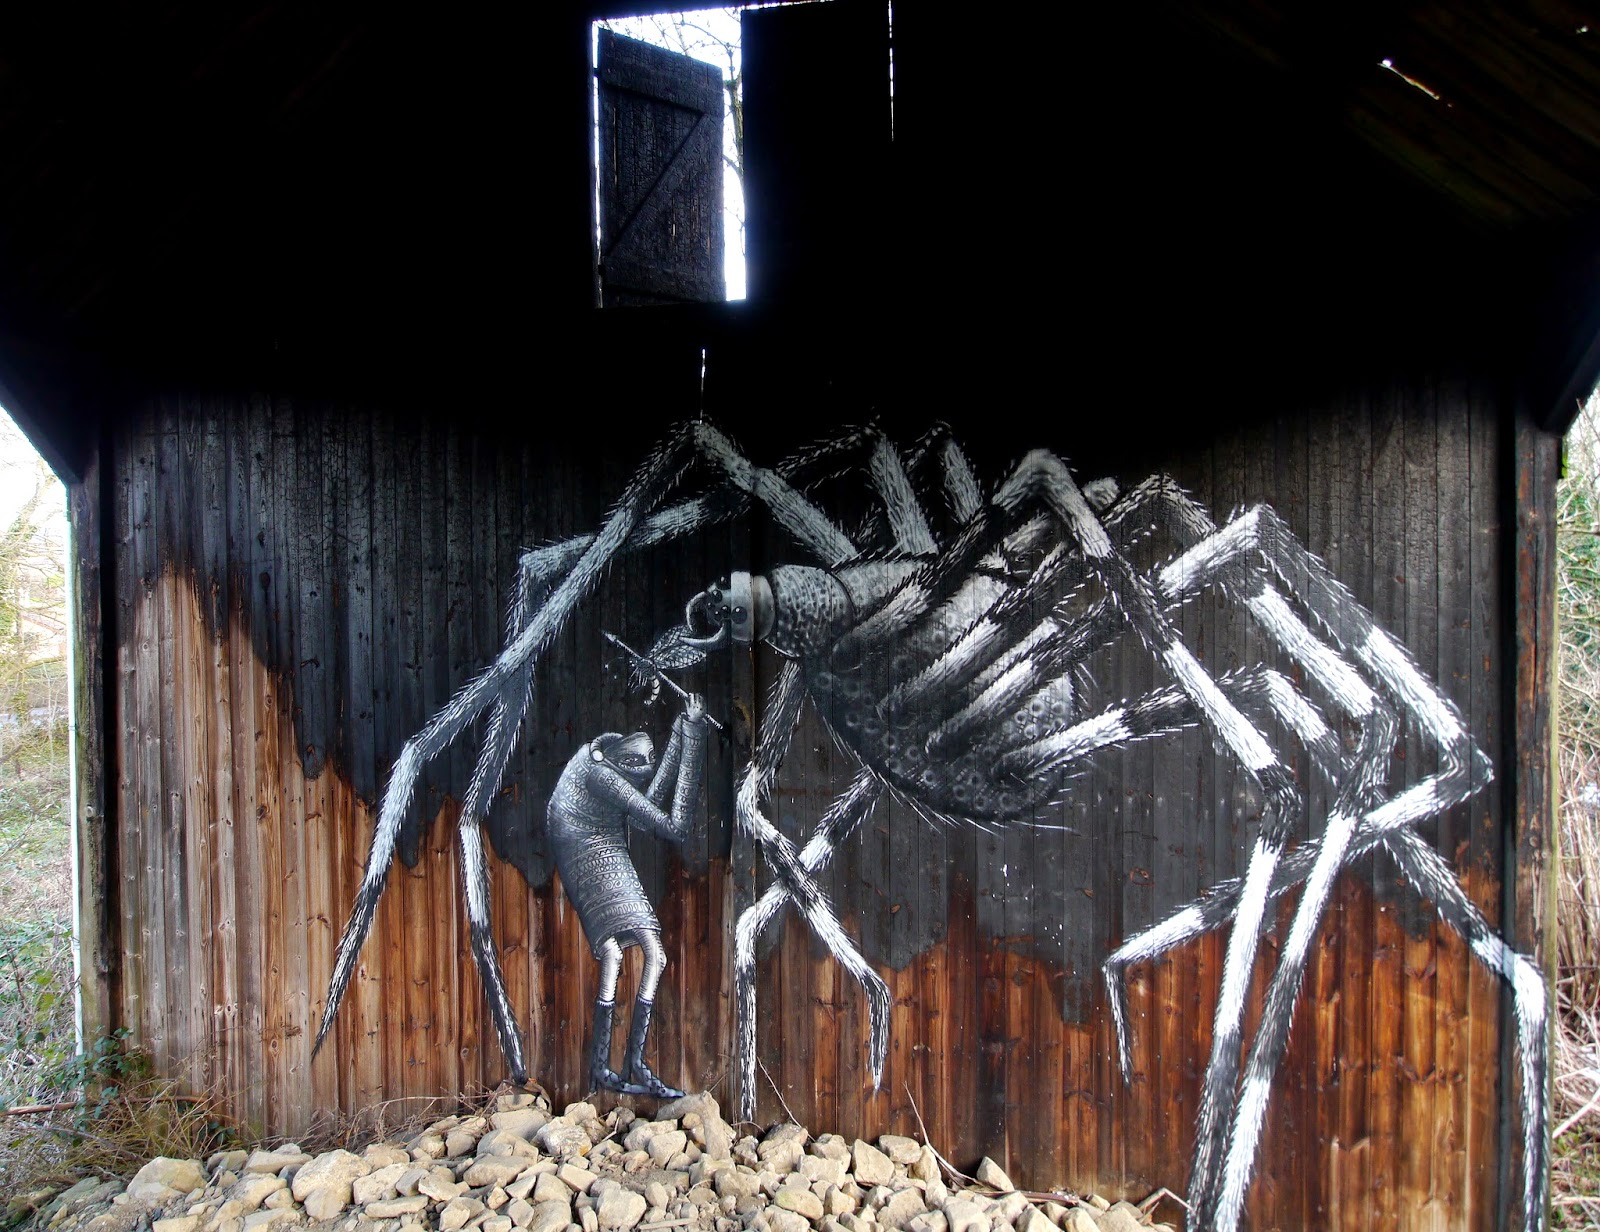 phlegm-the-spider-in-mosborough-sheffield-01